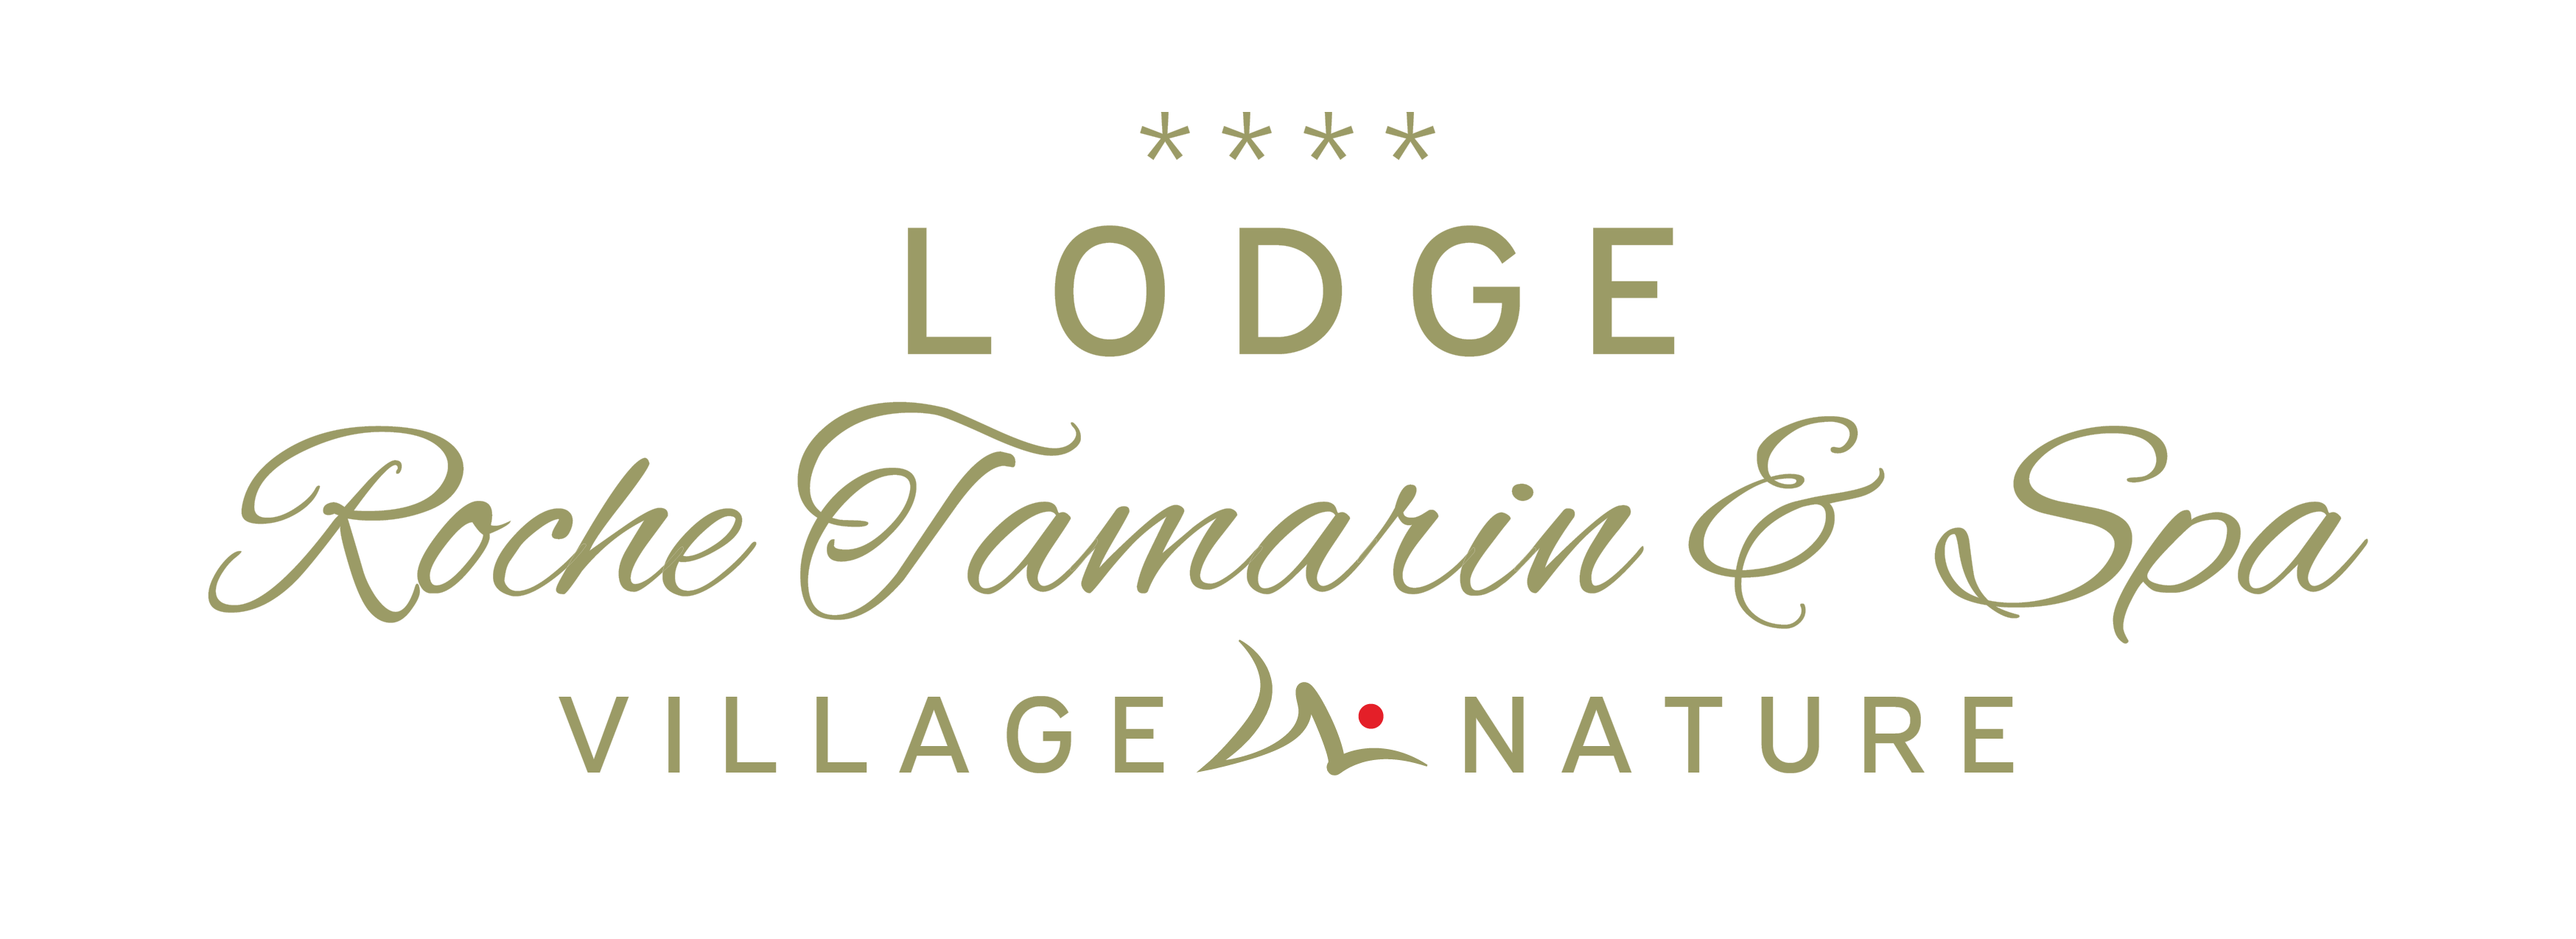 Lodge Tamarin & Spa